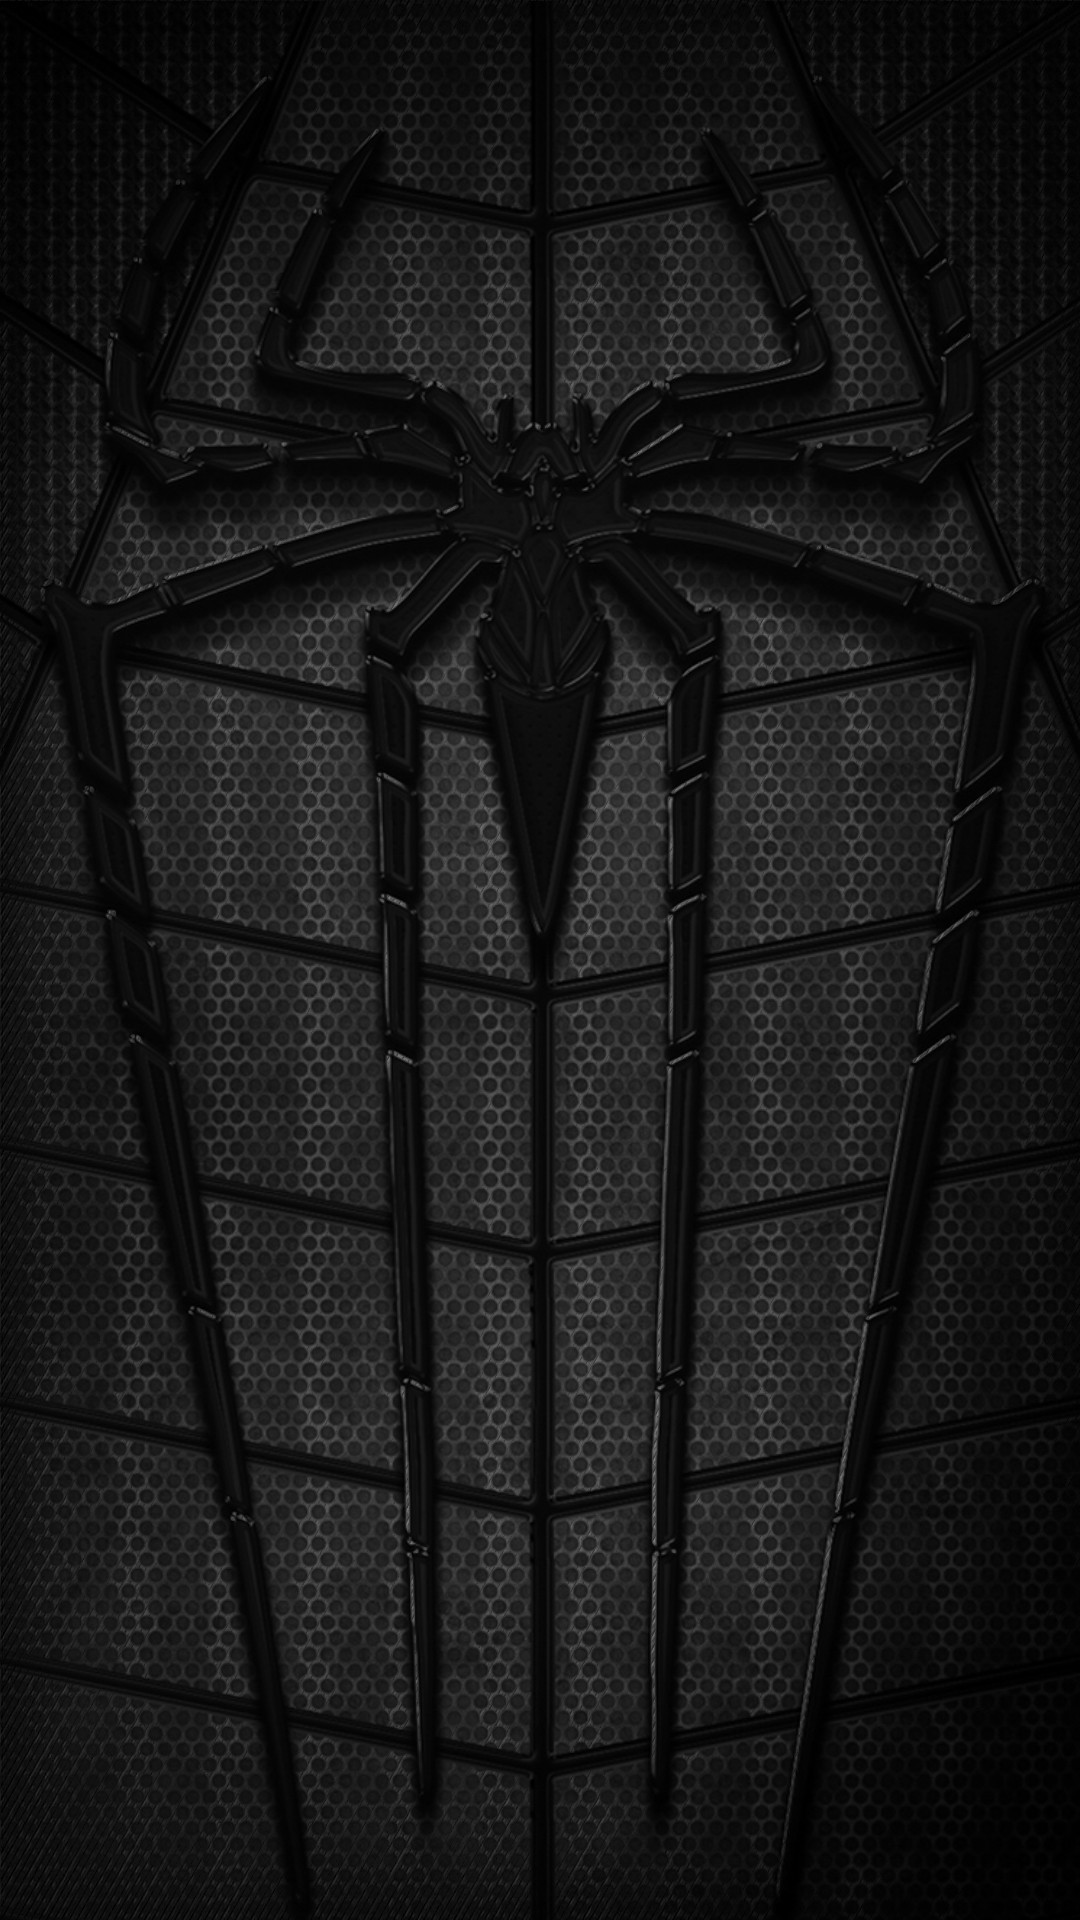 Wallpaper Spiderman Hitam